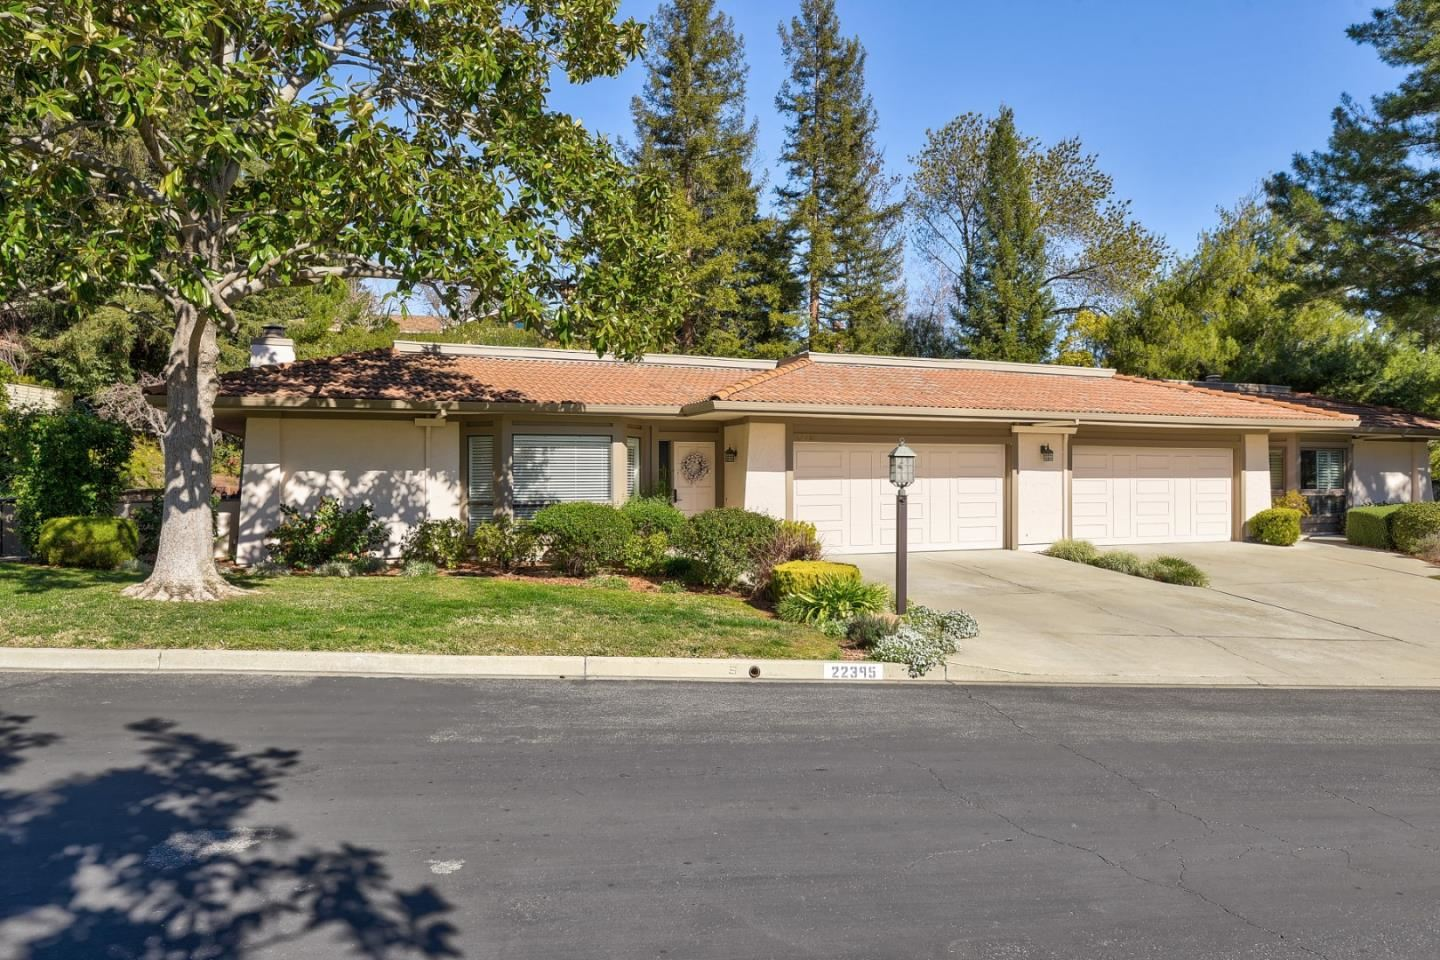 Photo for 22395 Rancho Deep Cliff DR, CUPERTINO, CA 95014 (MLS # ML81828994)